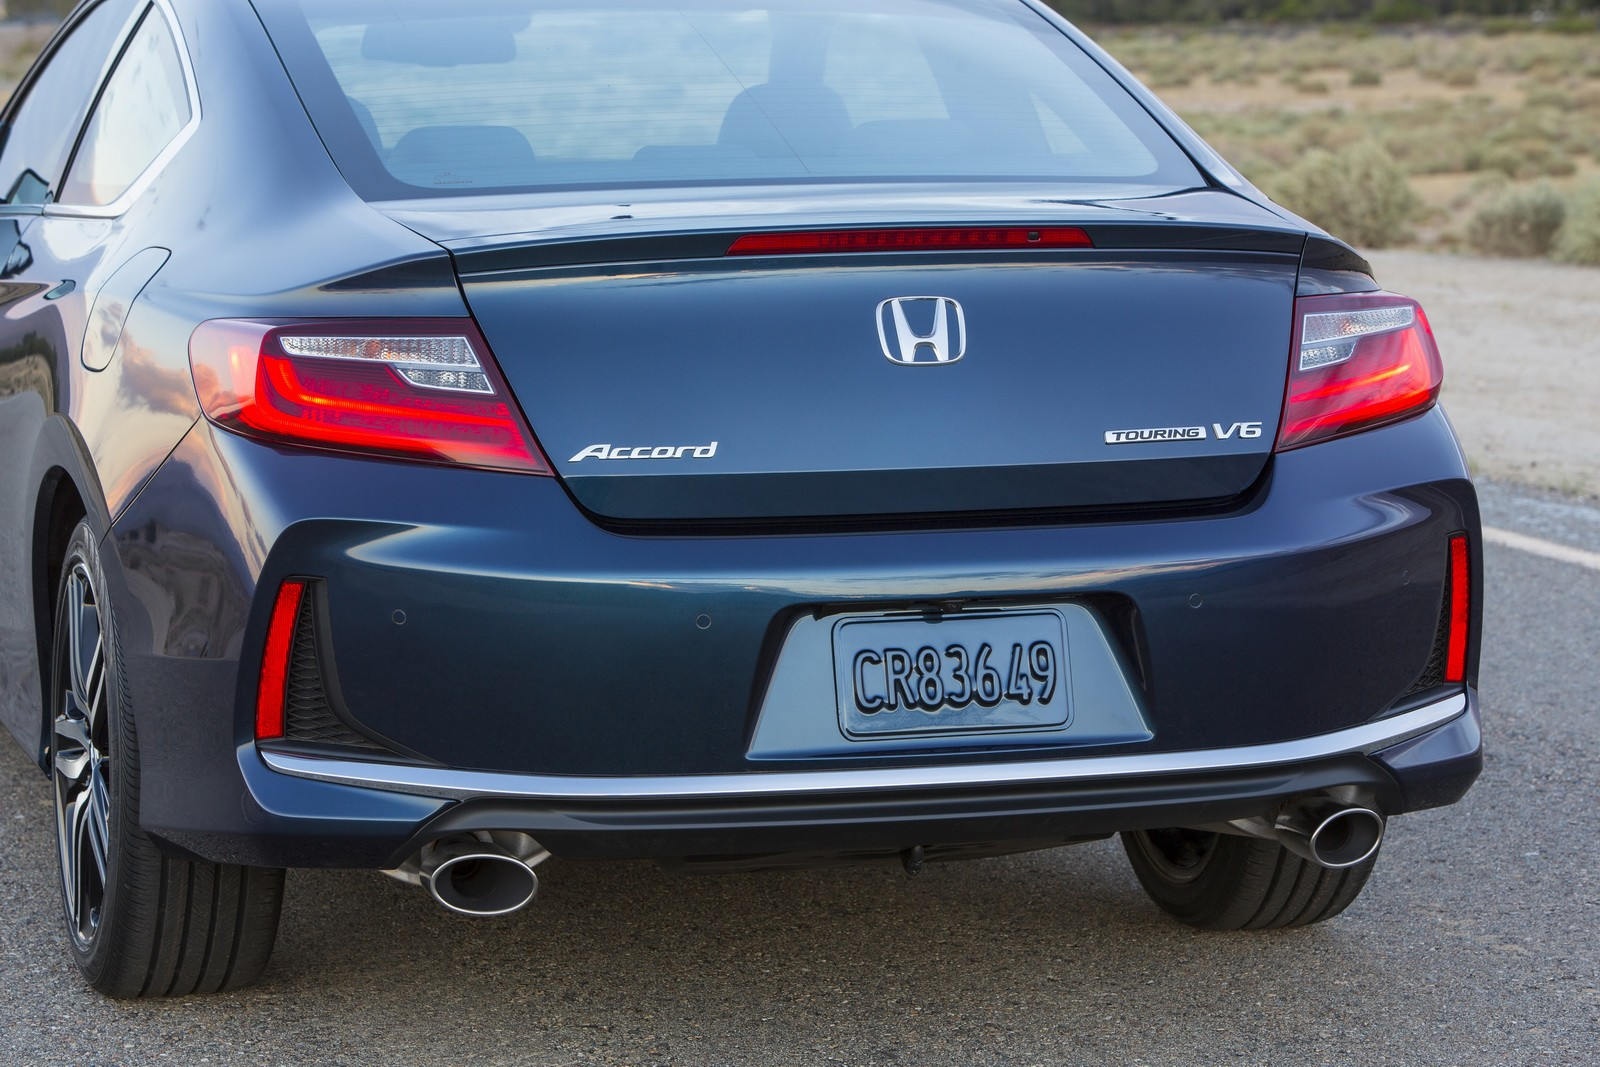 2016 Honda Accord Coupe Facelift Holds Both Visual and Mechanical Upgrades - autoevolution